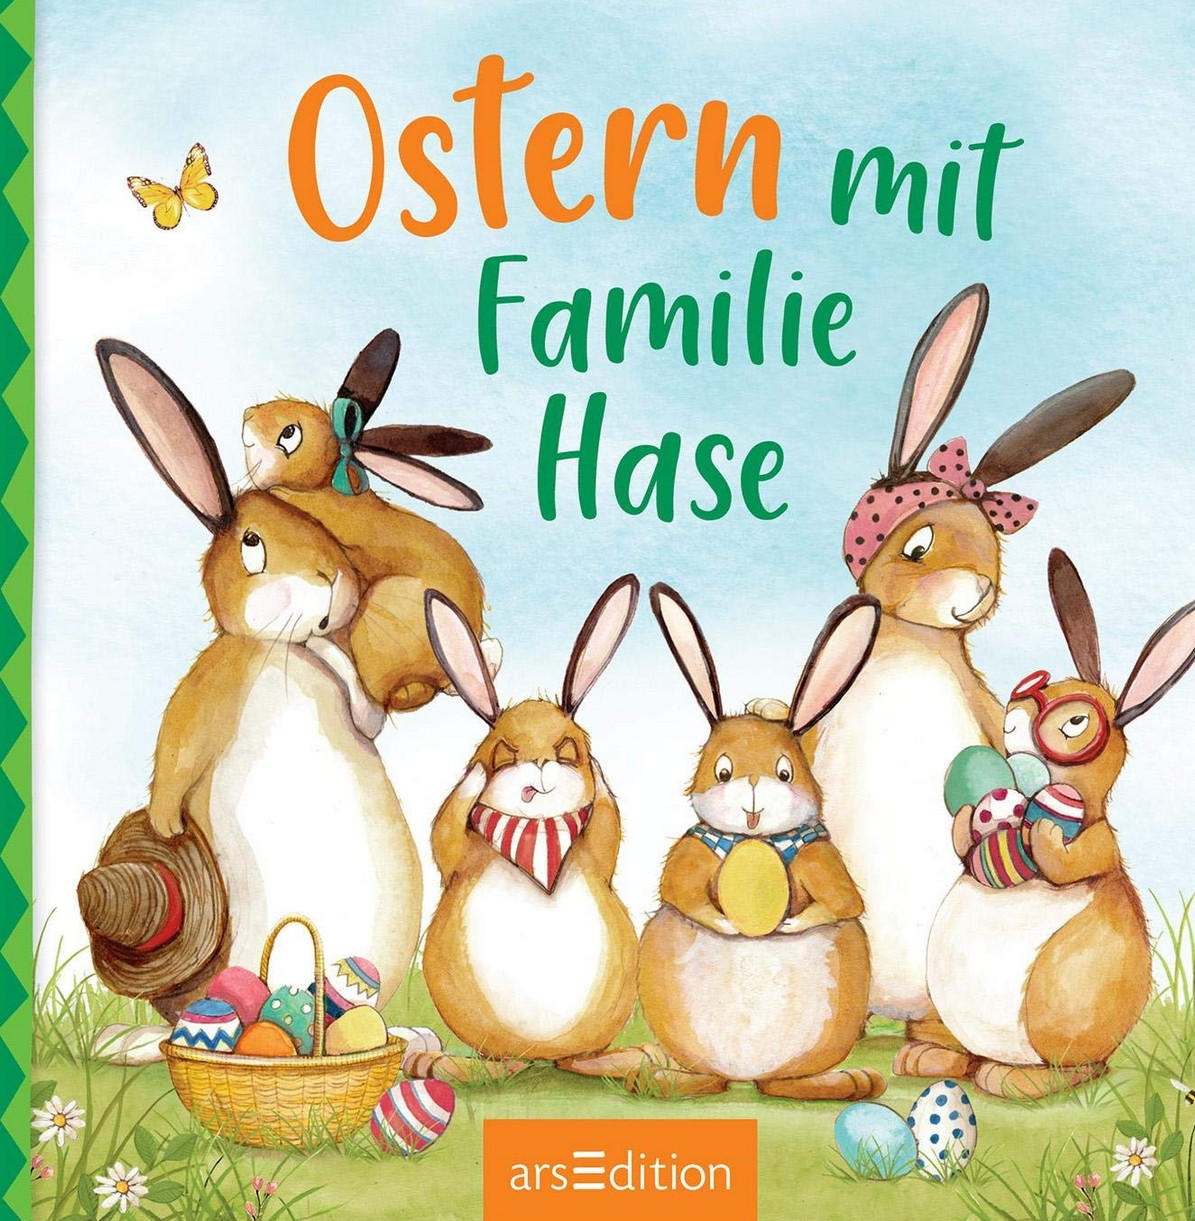 Ostern mit Familie Hase